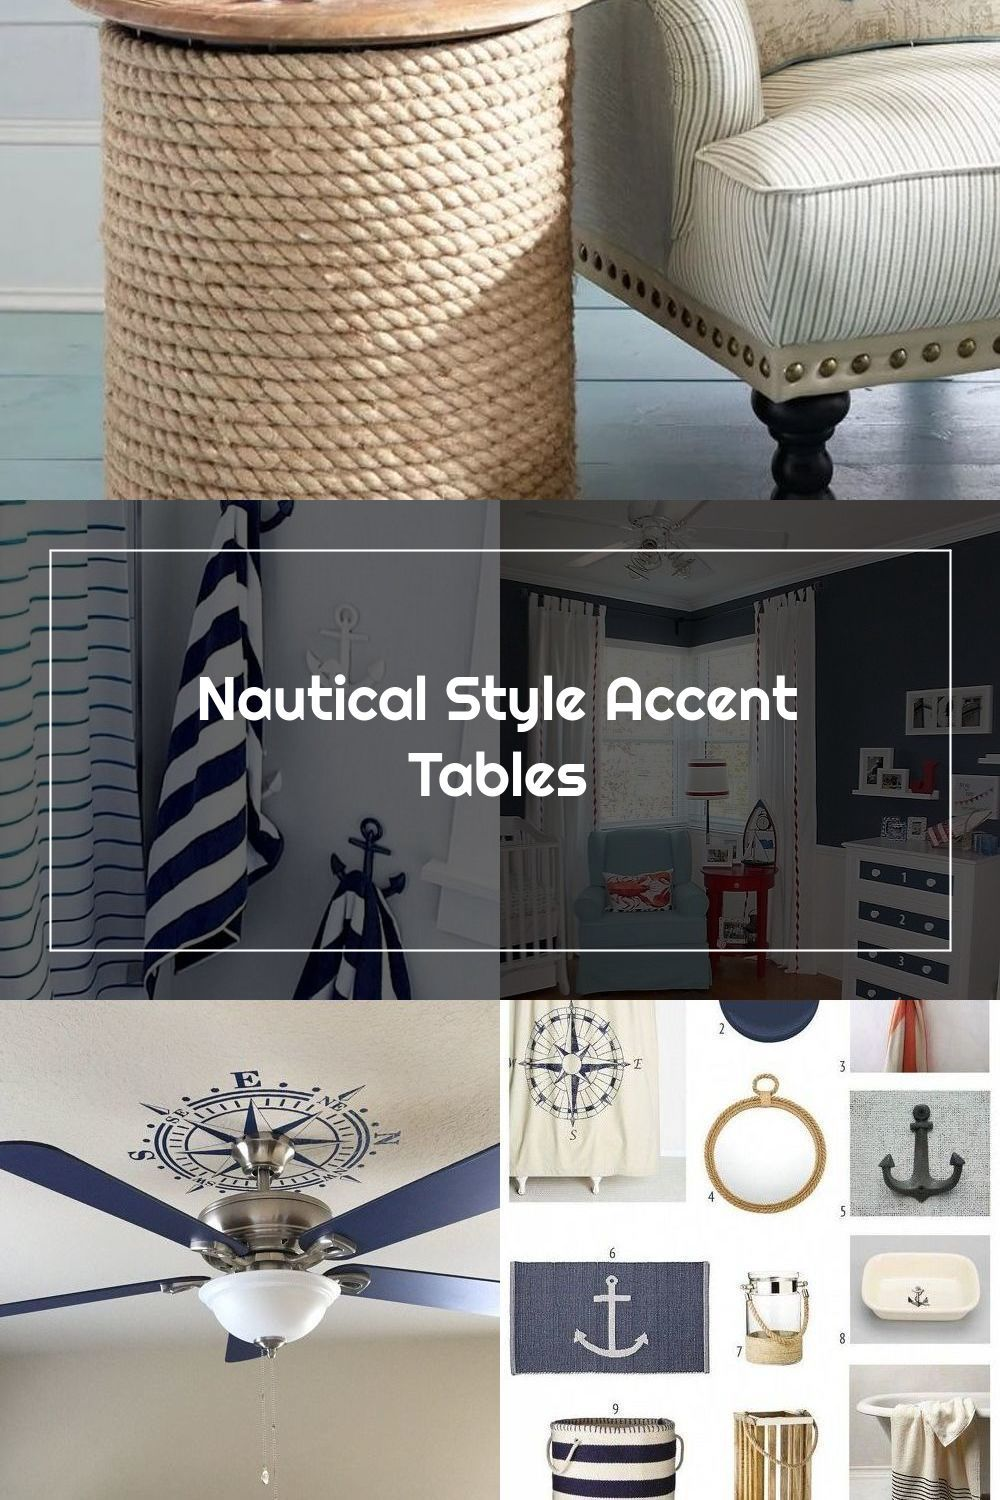 Nautical Accent Tables Fill The Small Spaces In Coastal Interior